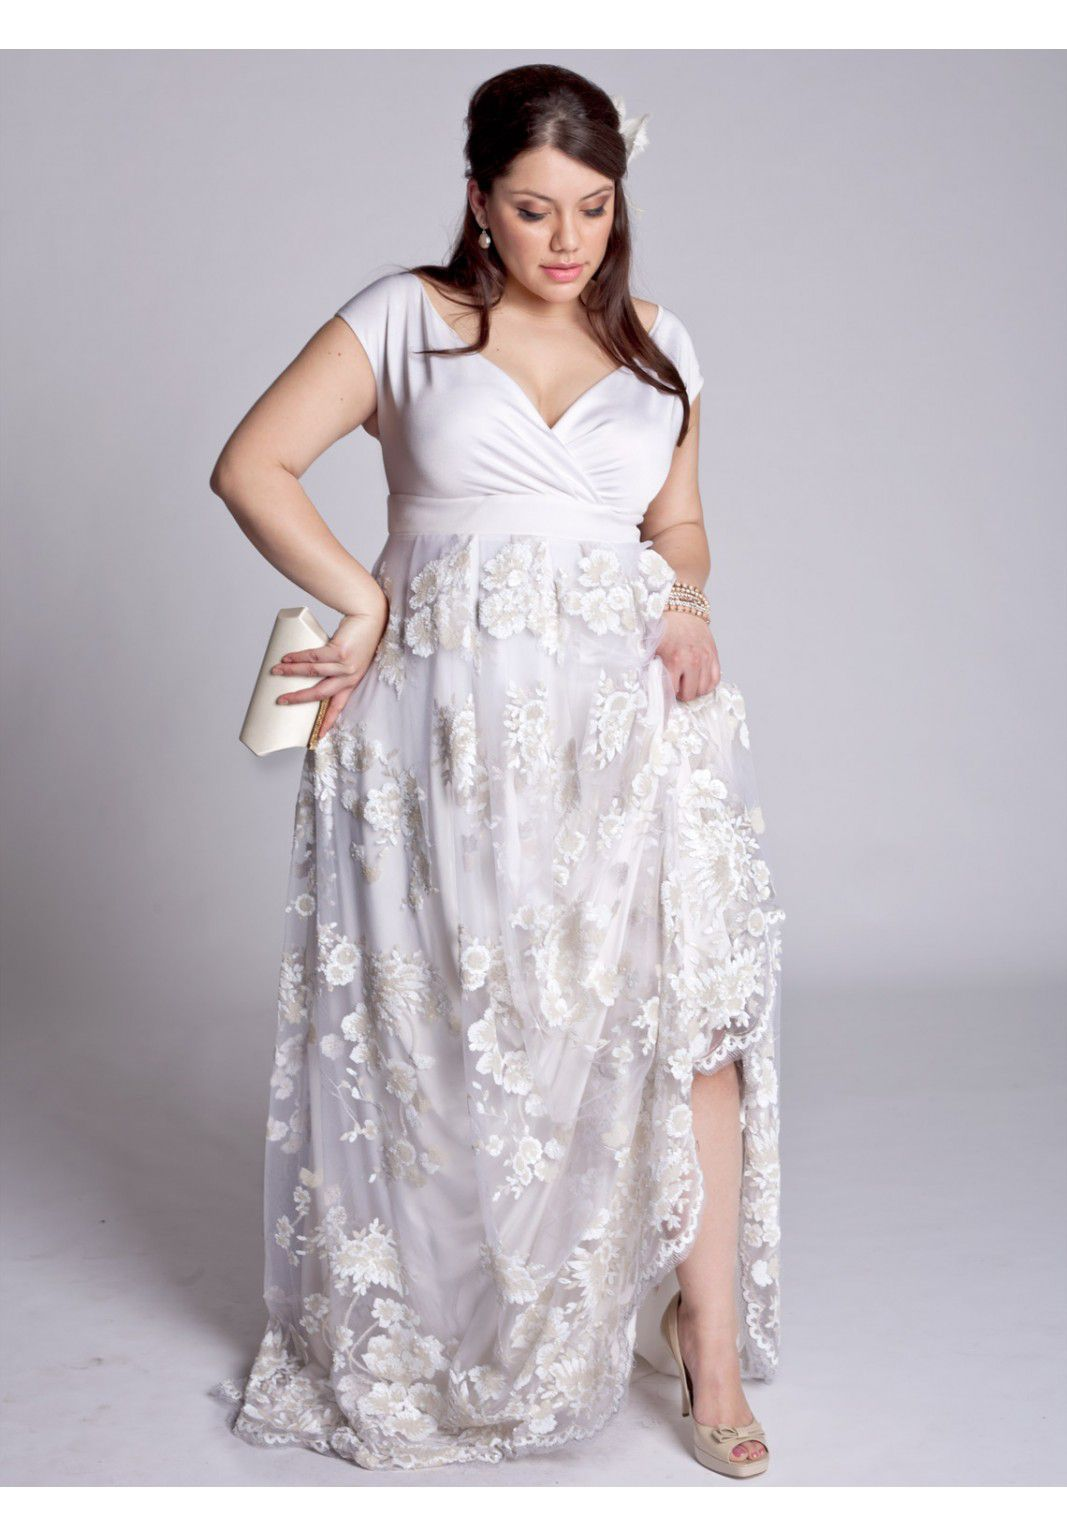 Plus Size Eugenia Vintage Wedding Gown Image How Beautiful I Love